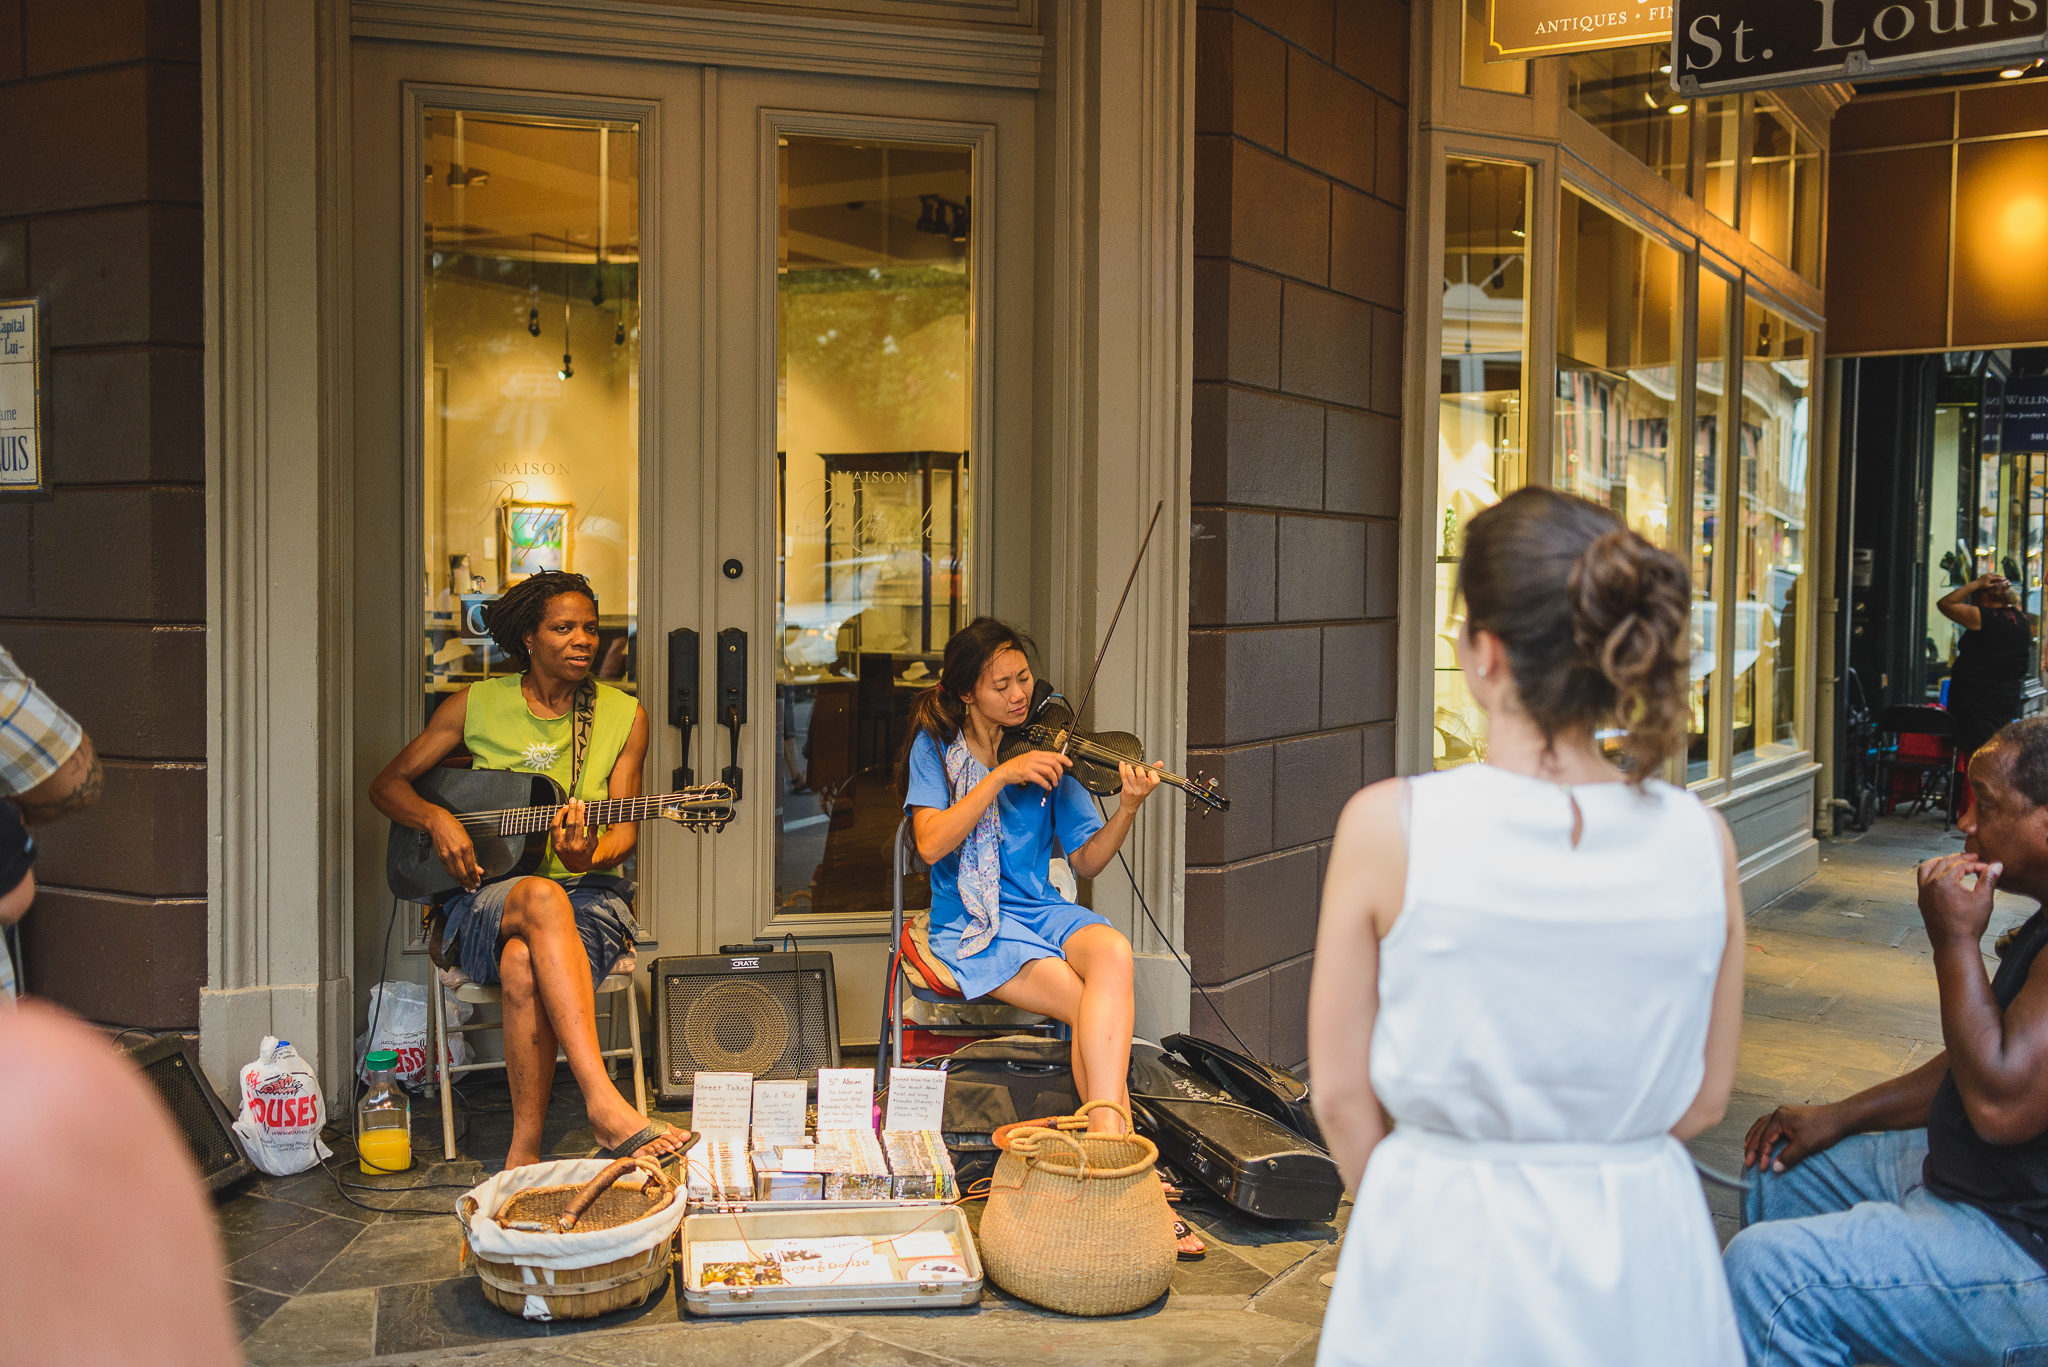 Musical performers in French Quarter